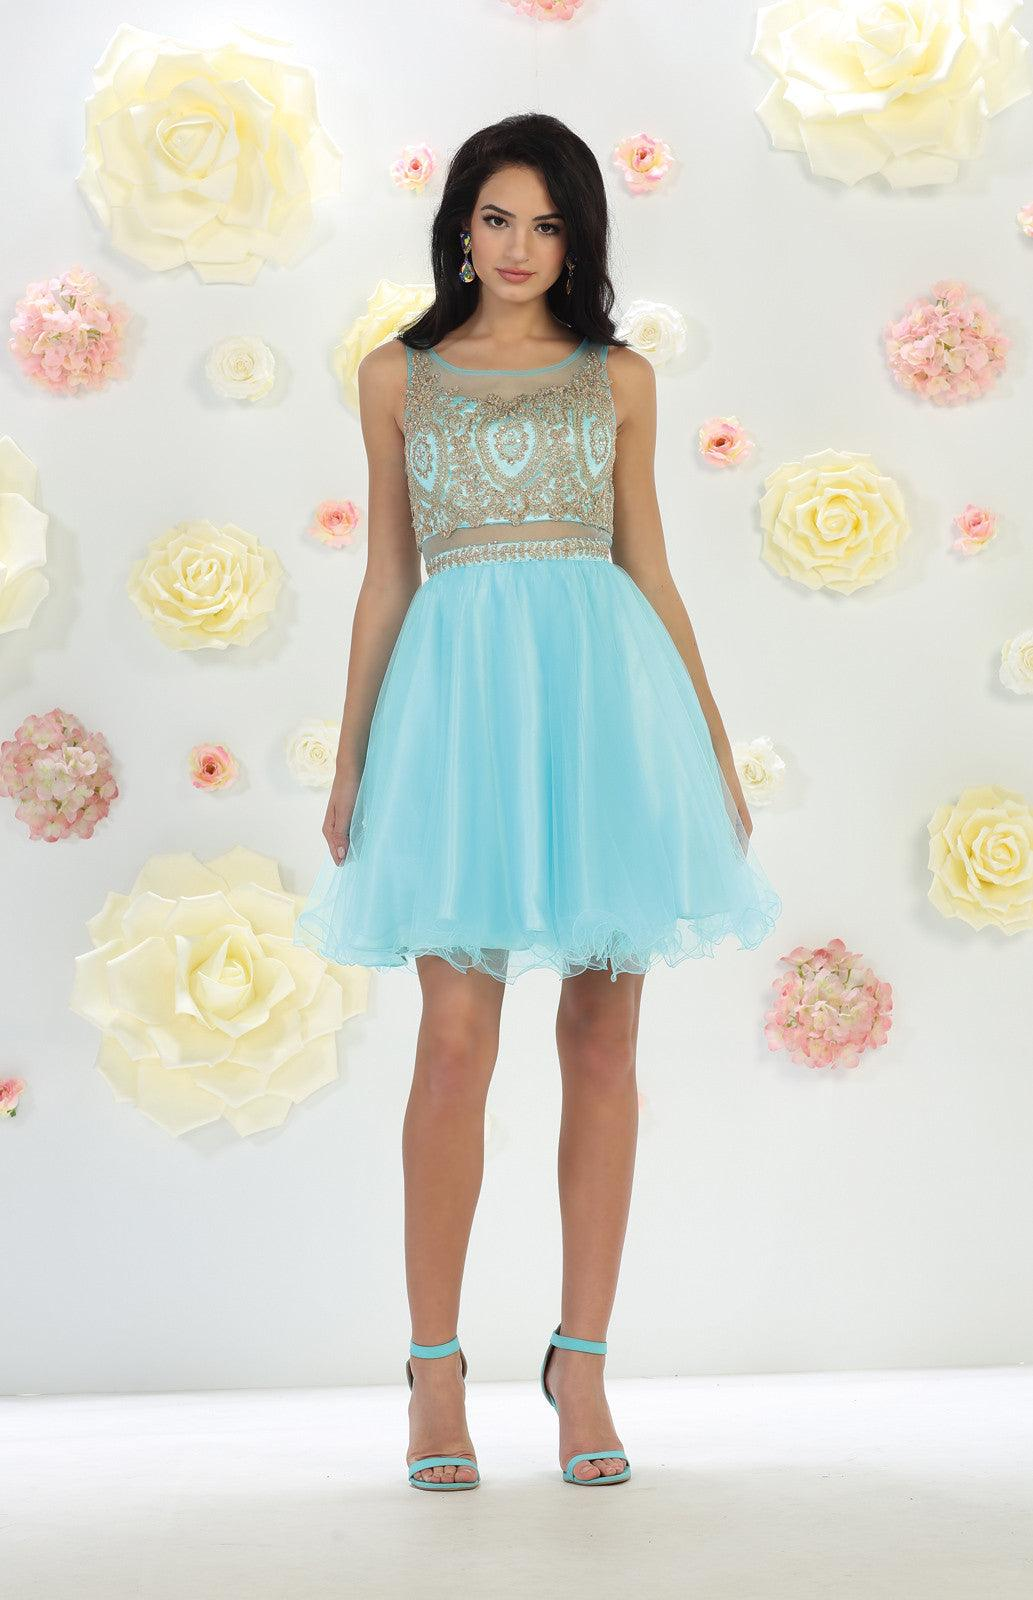 2 Piece Short Prom Dresses - The Dress Outlet